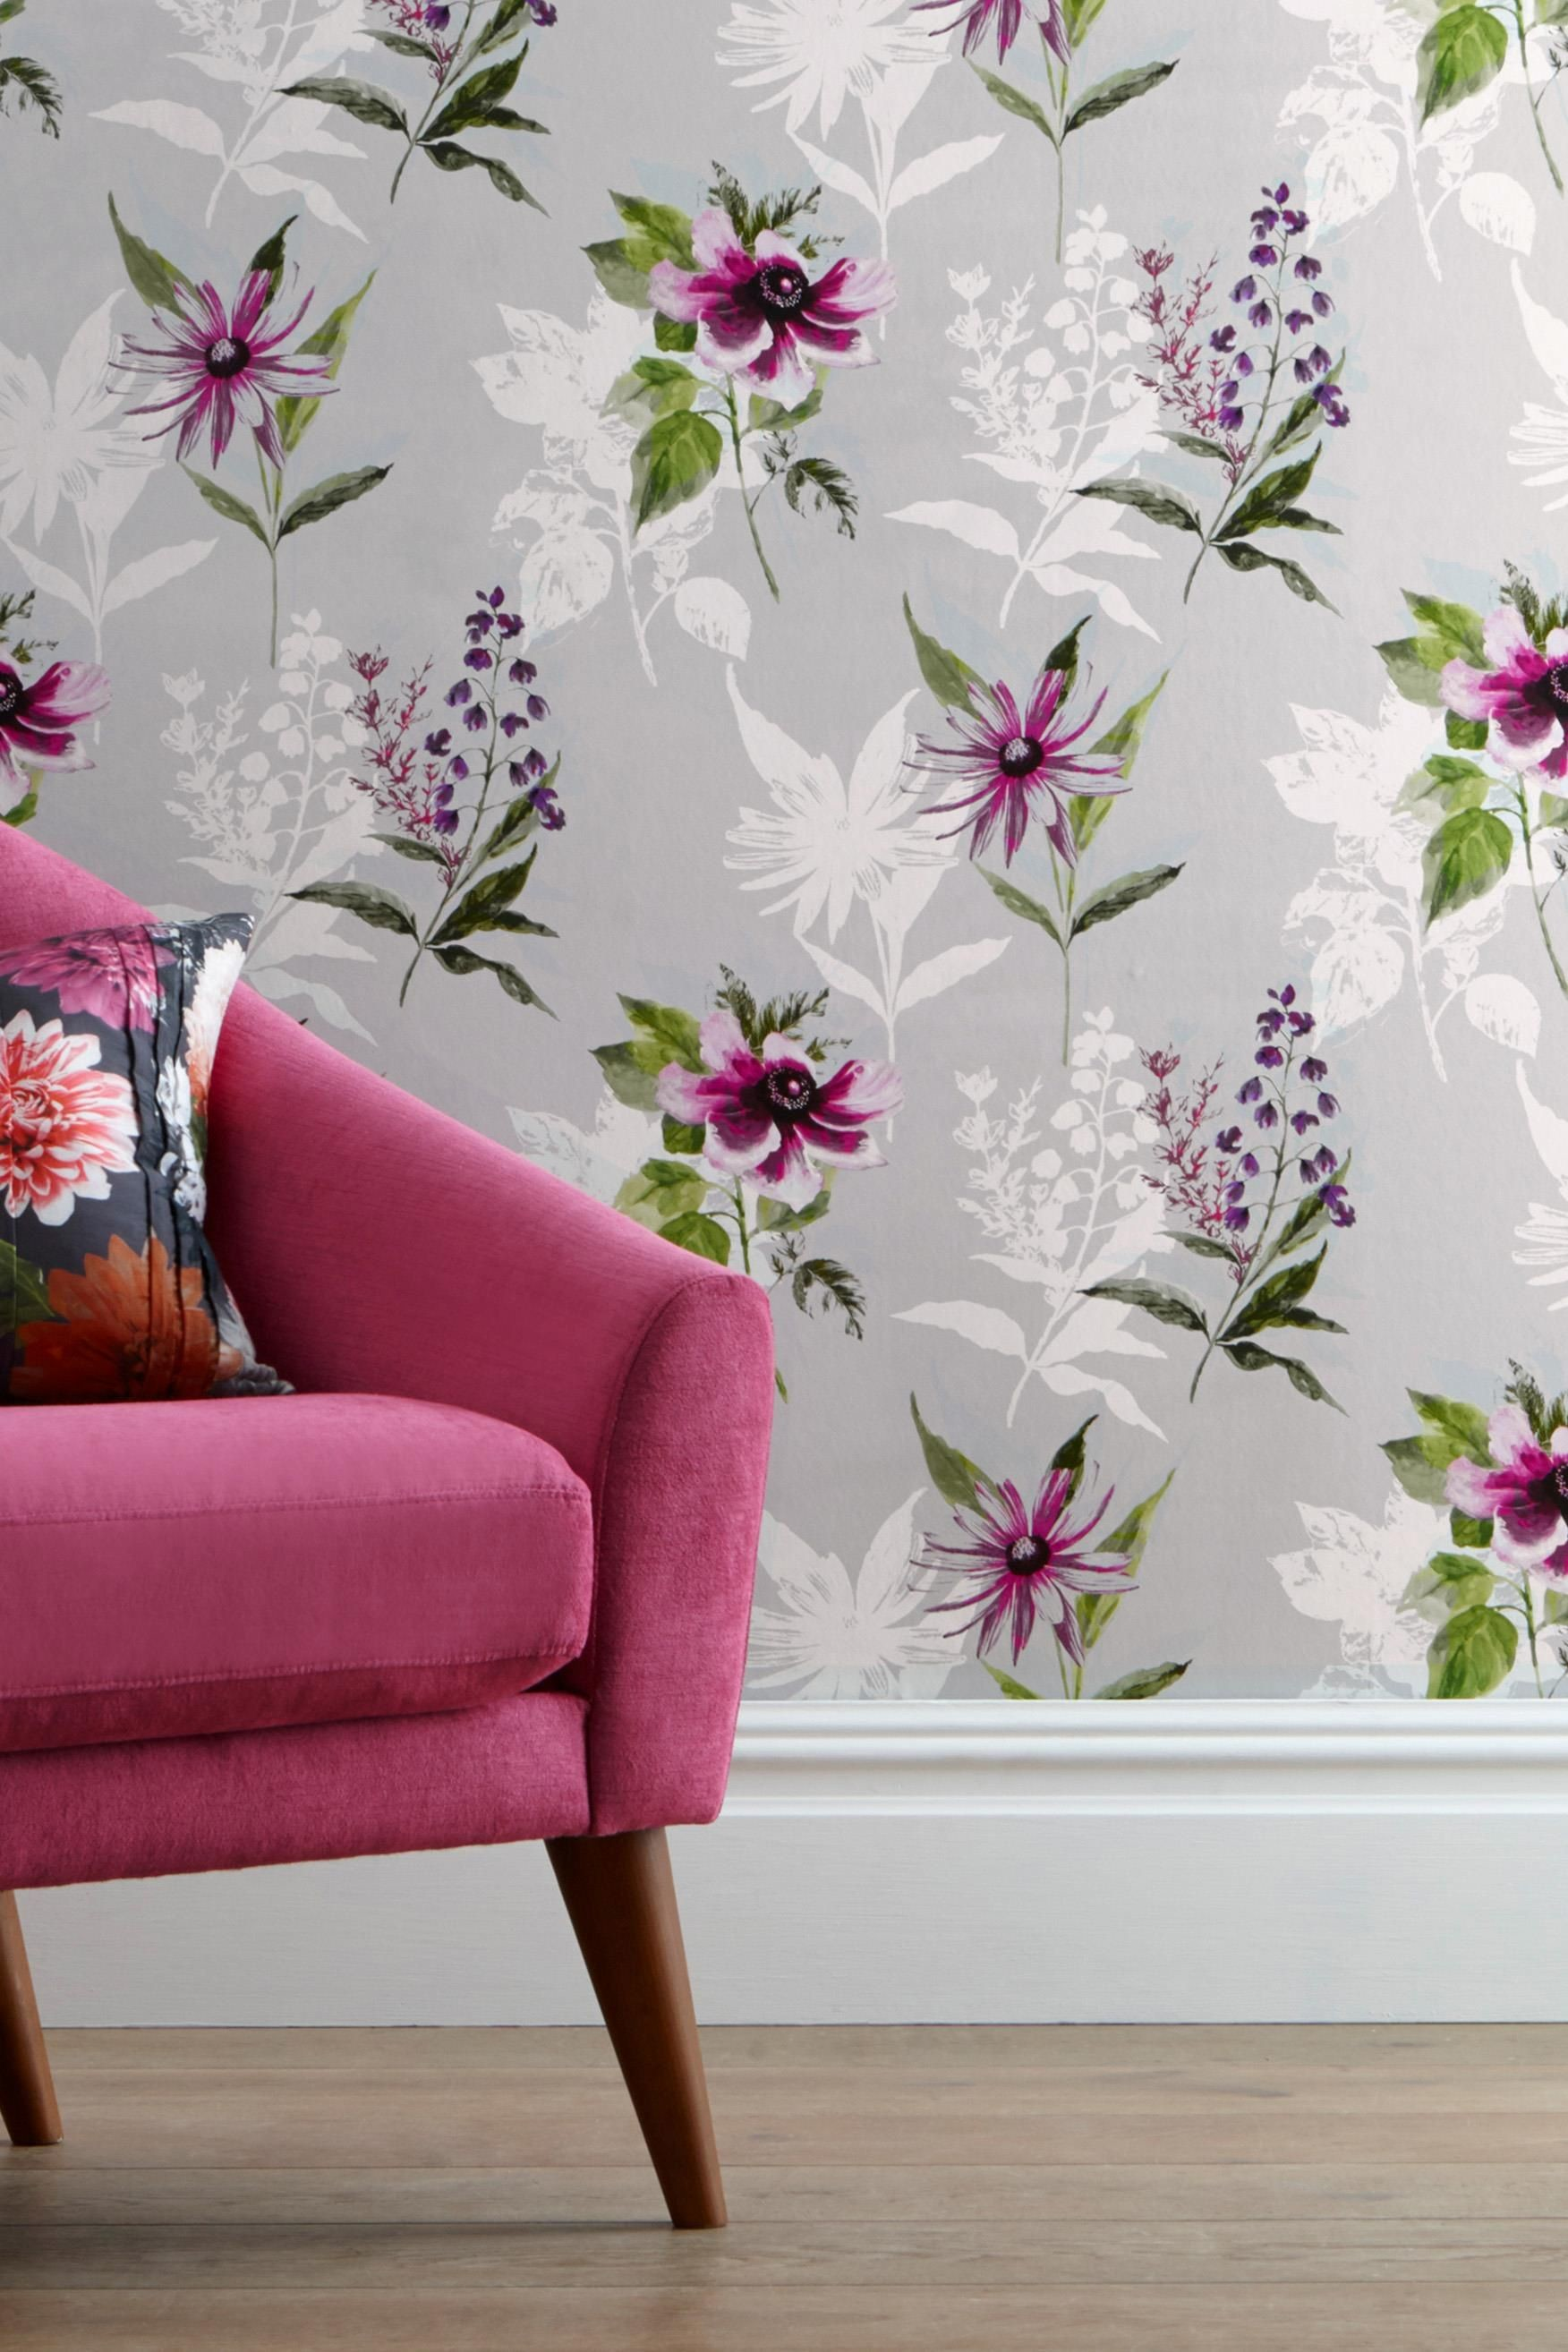 Vibrant Floral Wallpaper from Next UK – pick out darker pink/purple for  dramatic accent wall